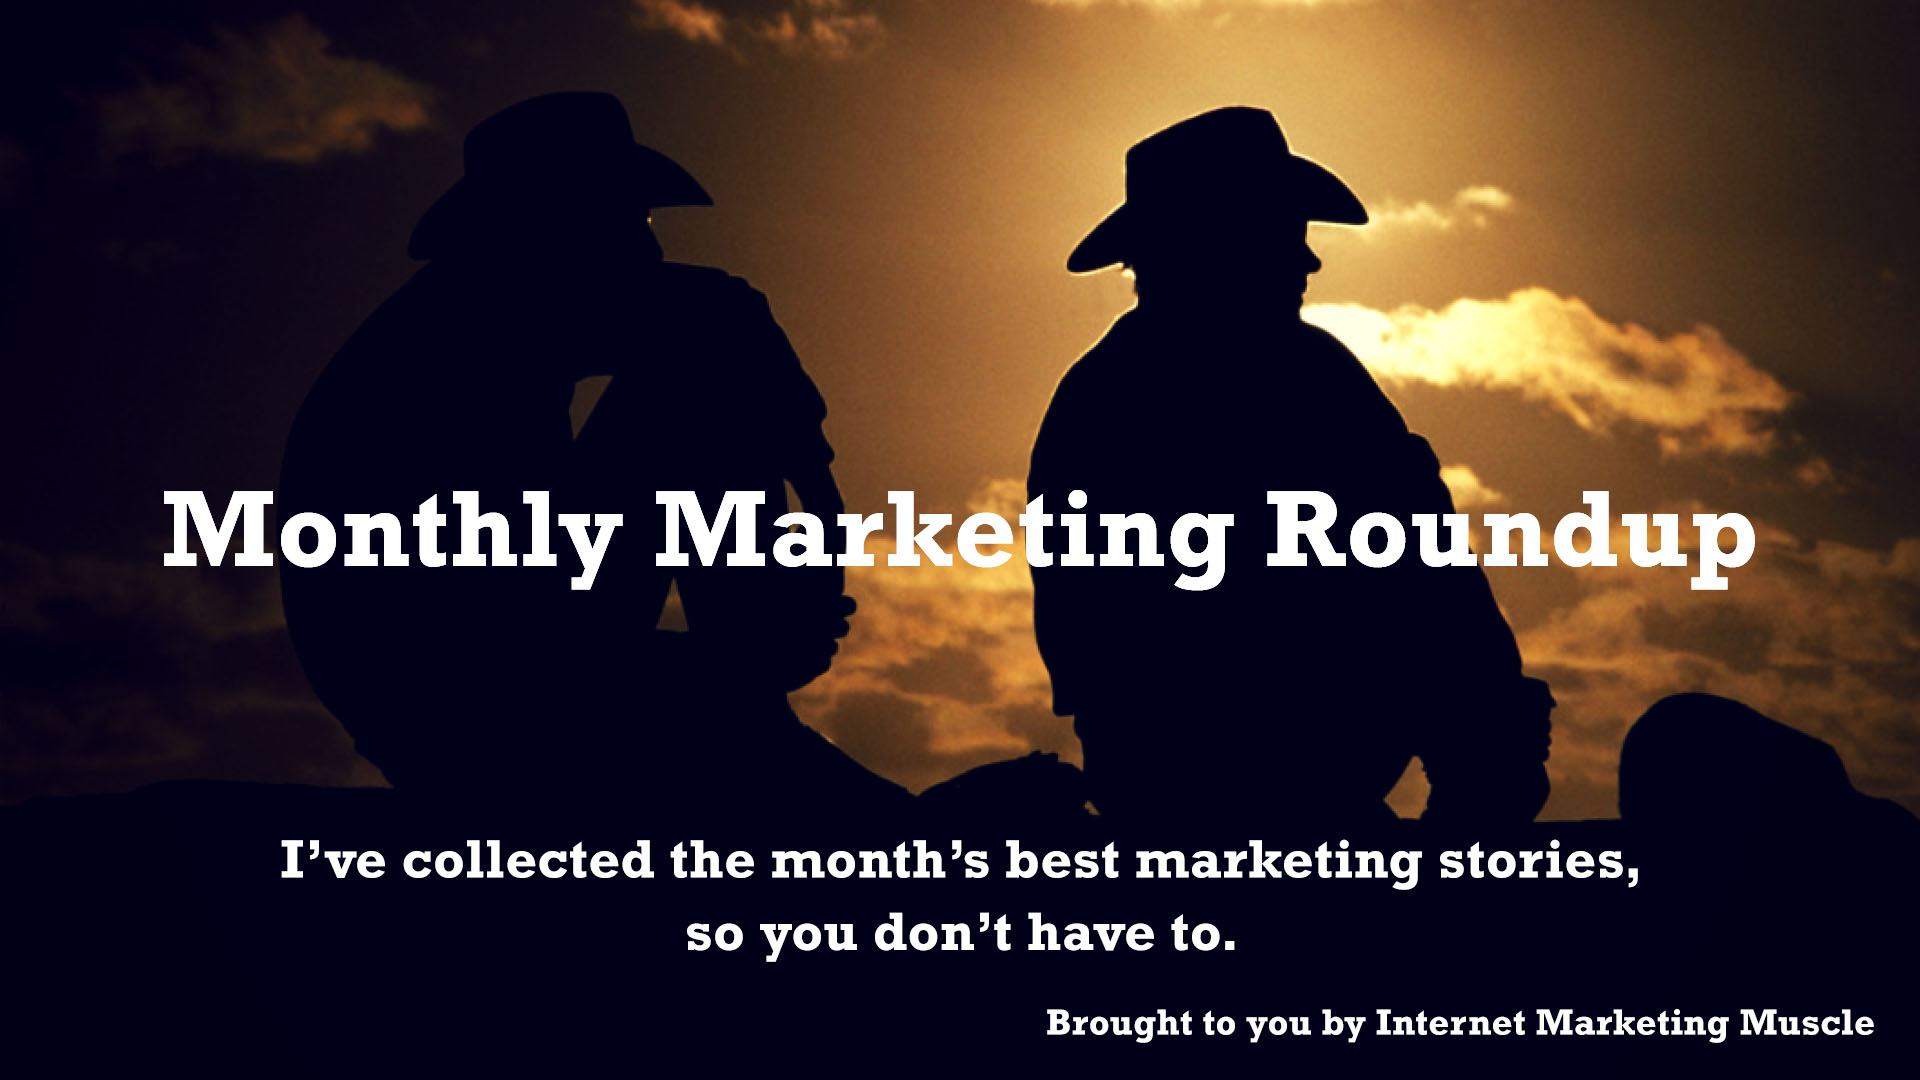 Best Marketing Stories of the Month